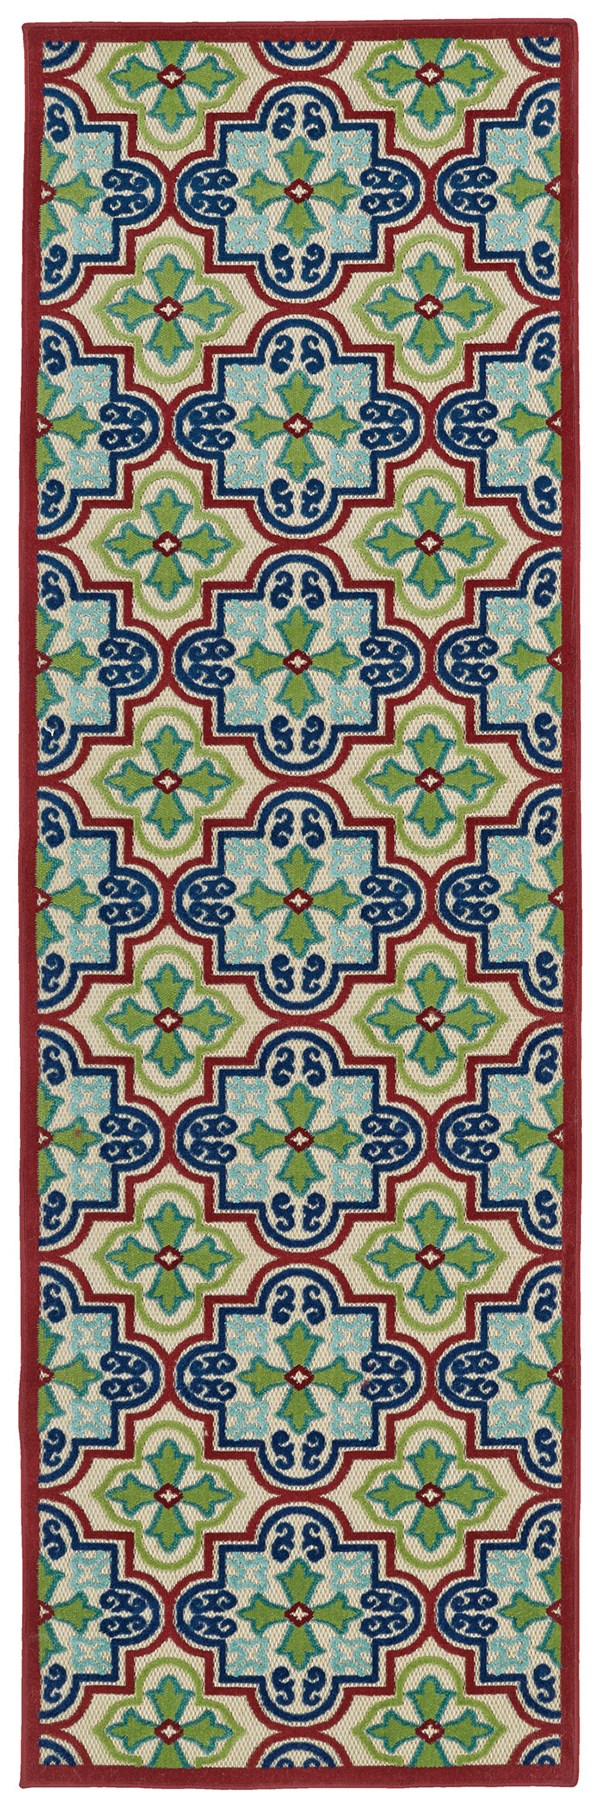 Red, Navy, Green (86) Moroccan Area Rug